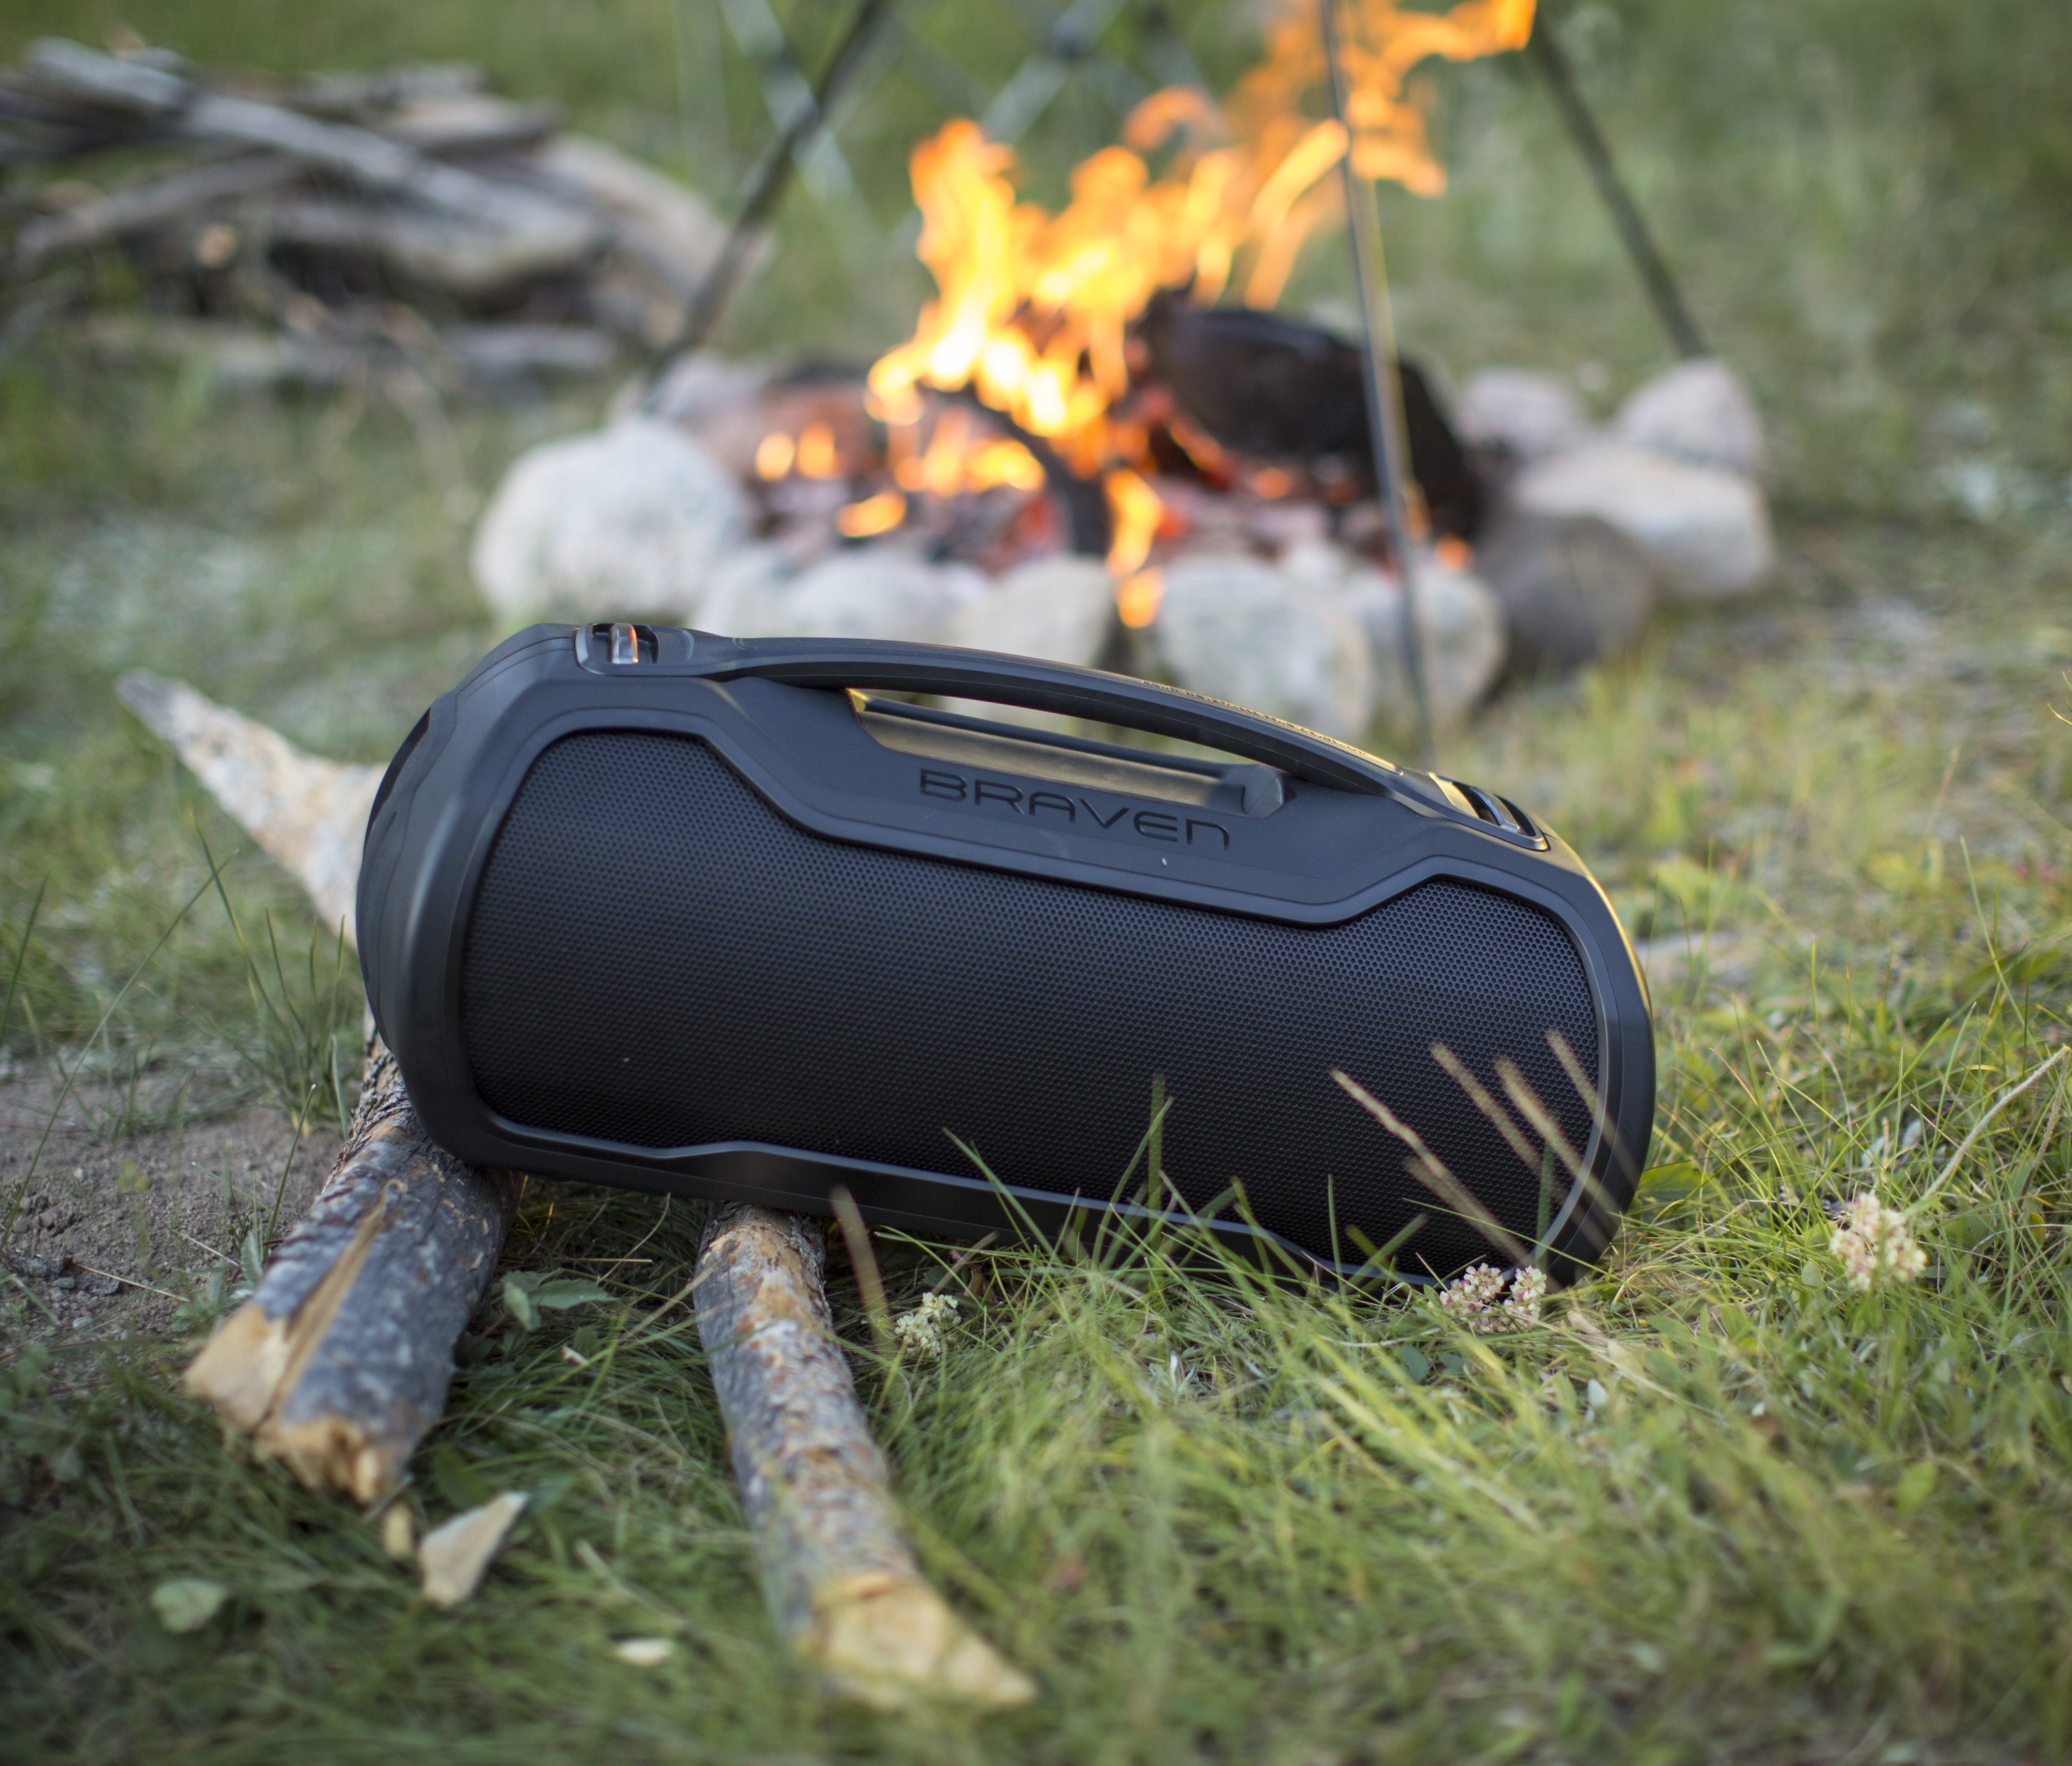 Braven XL Bluetooth Speaker